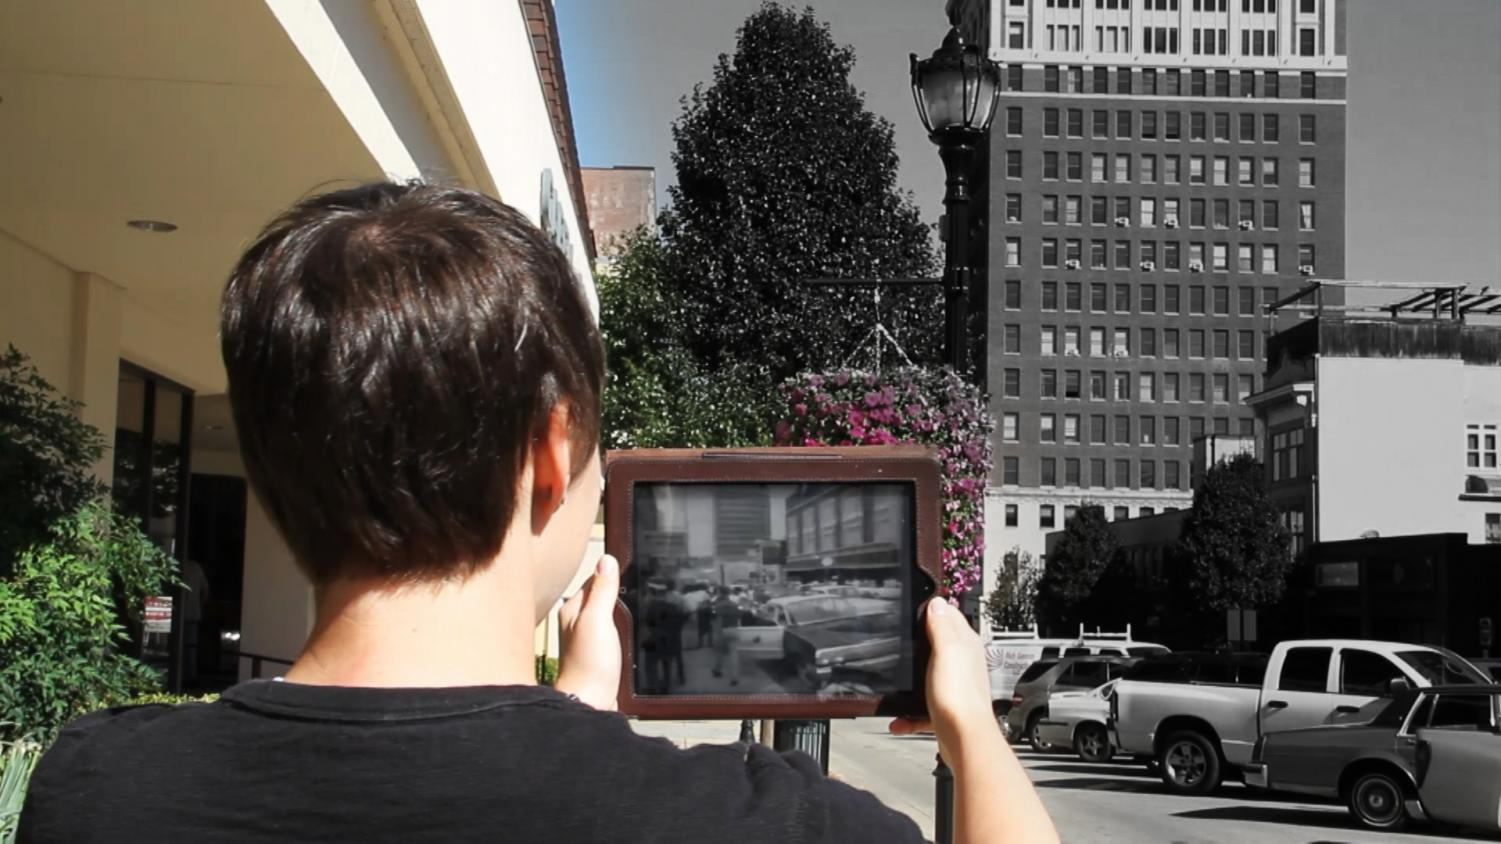 A student uses Clio in Huntington to view a historic protest on Fifth Avenue.